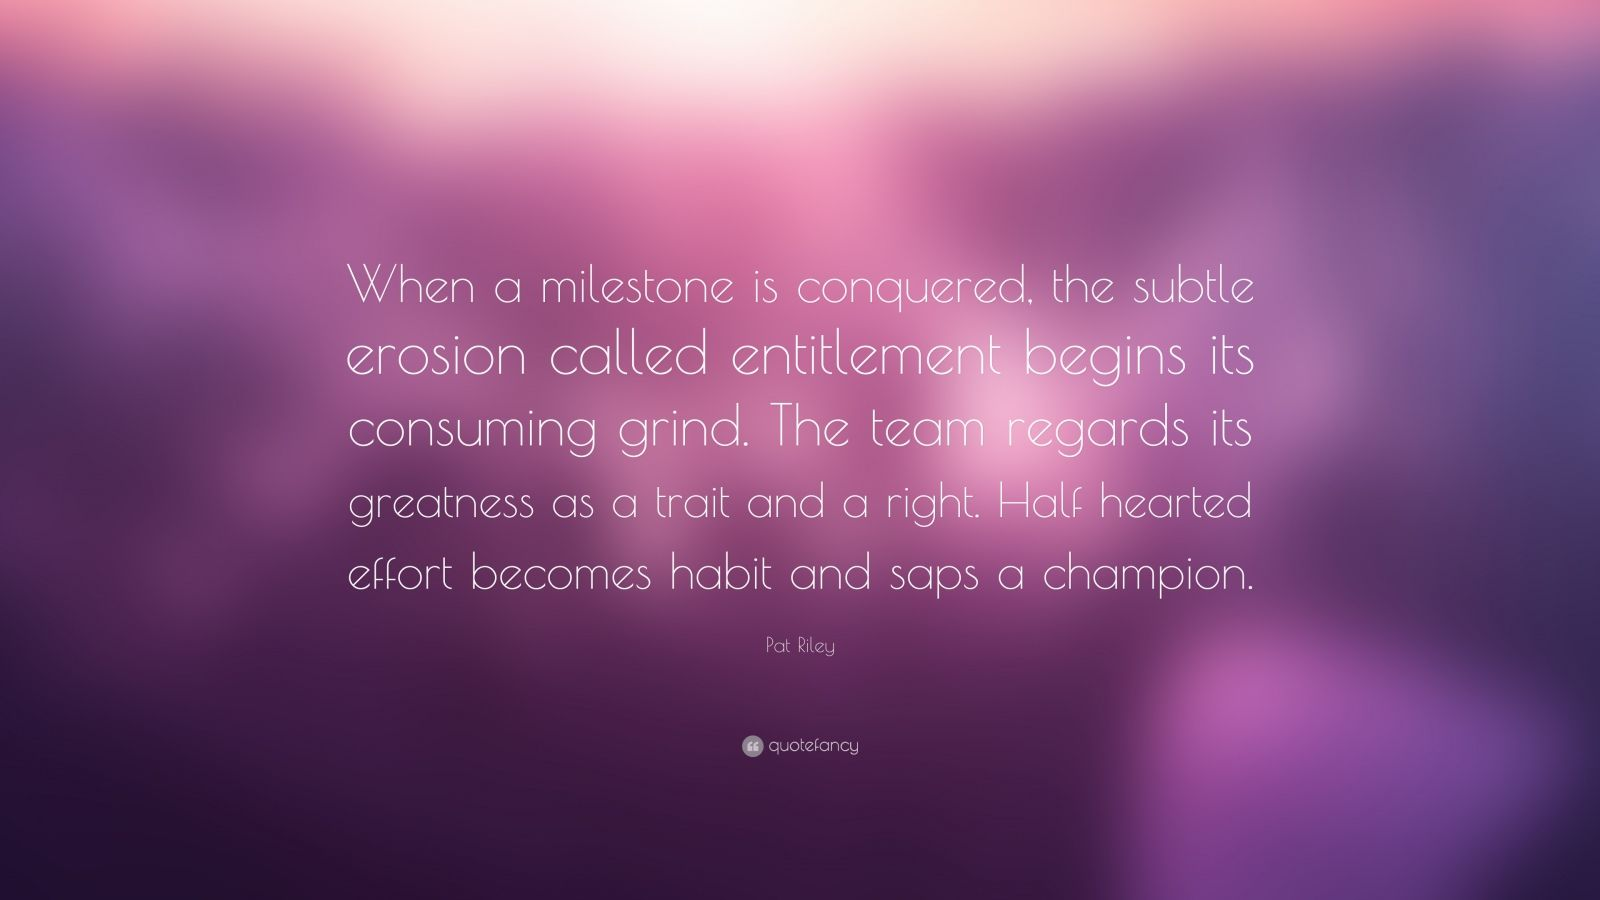 "Pat Riley Quote: ""When a milestone is conquered, the subtle erosion called entitlement begins its consuming grind. The team regards its greatness as a trait and a right. Half hearted effort becomes habit and saps a champion."""